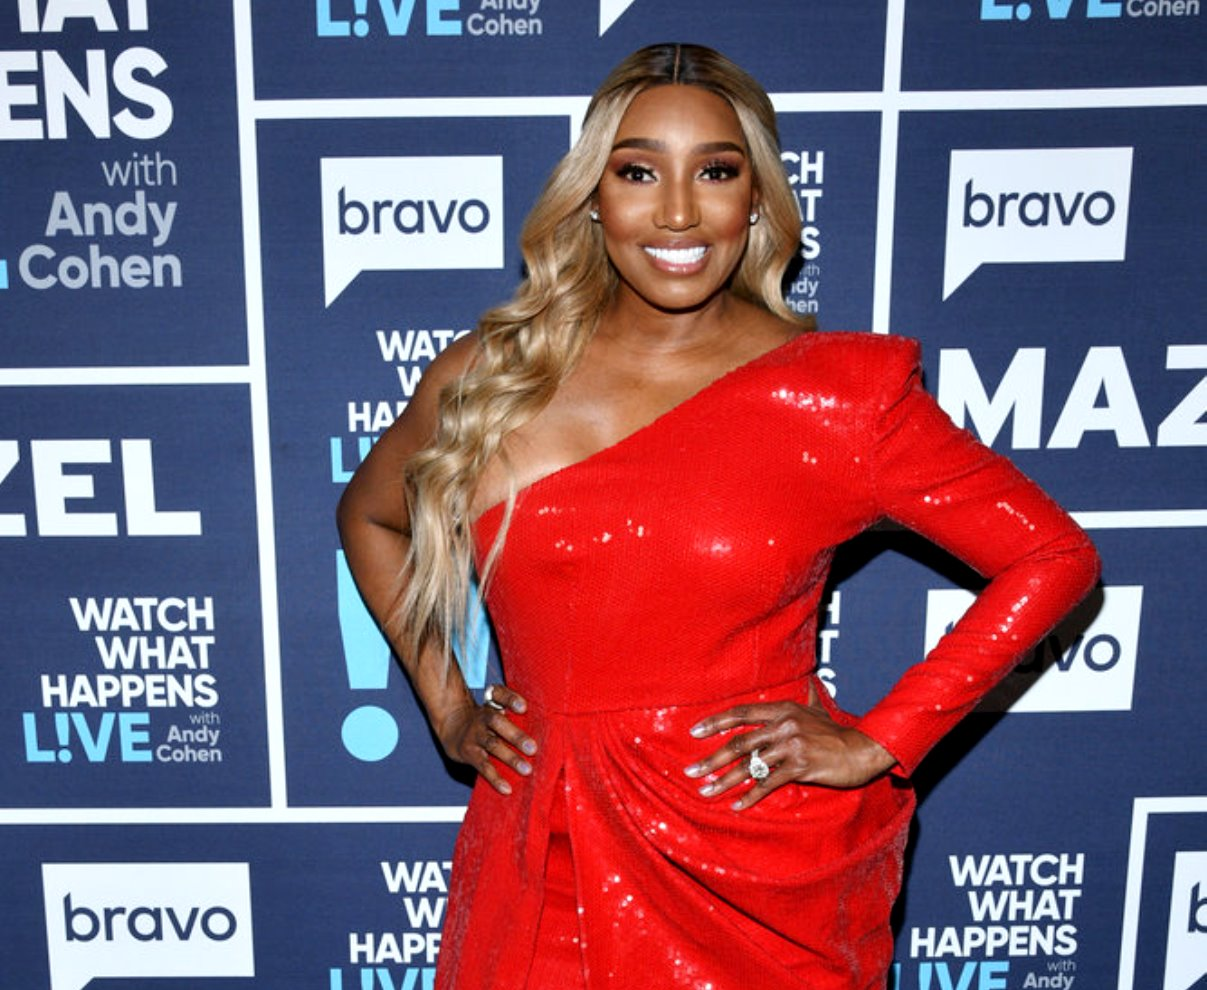 Nene Leakes Explains Why She Walked Off the RHOA Virtual Reunion, Says She's Undecided About Returning to Show Next Season